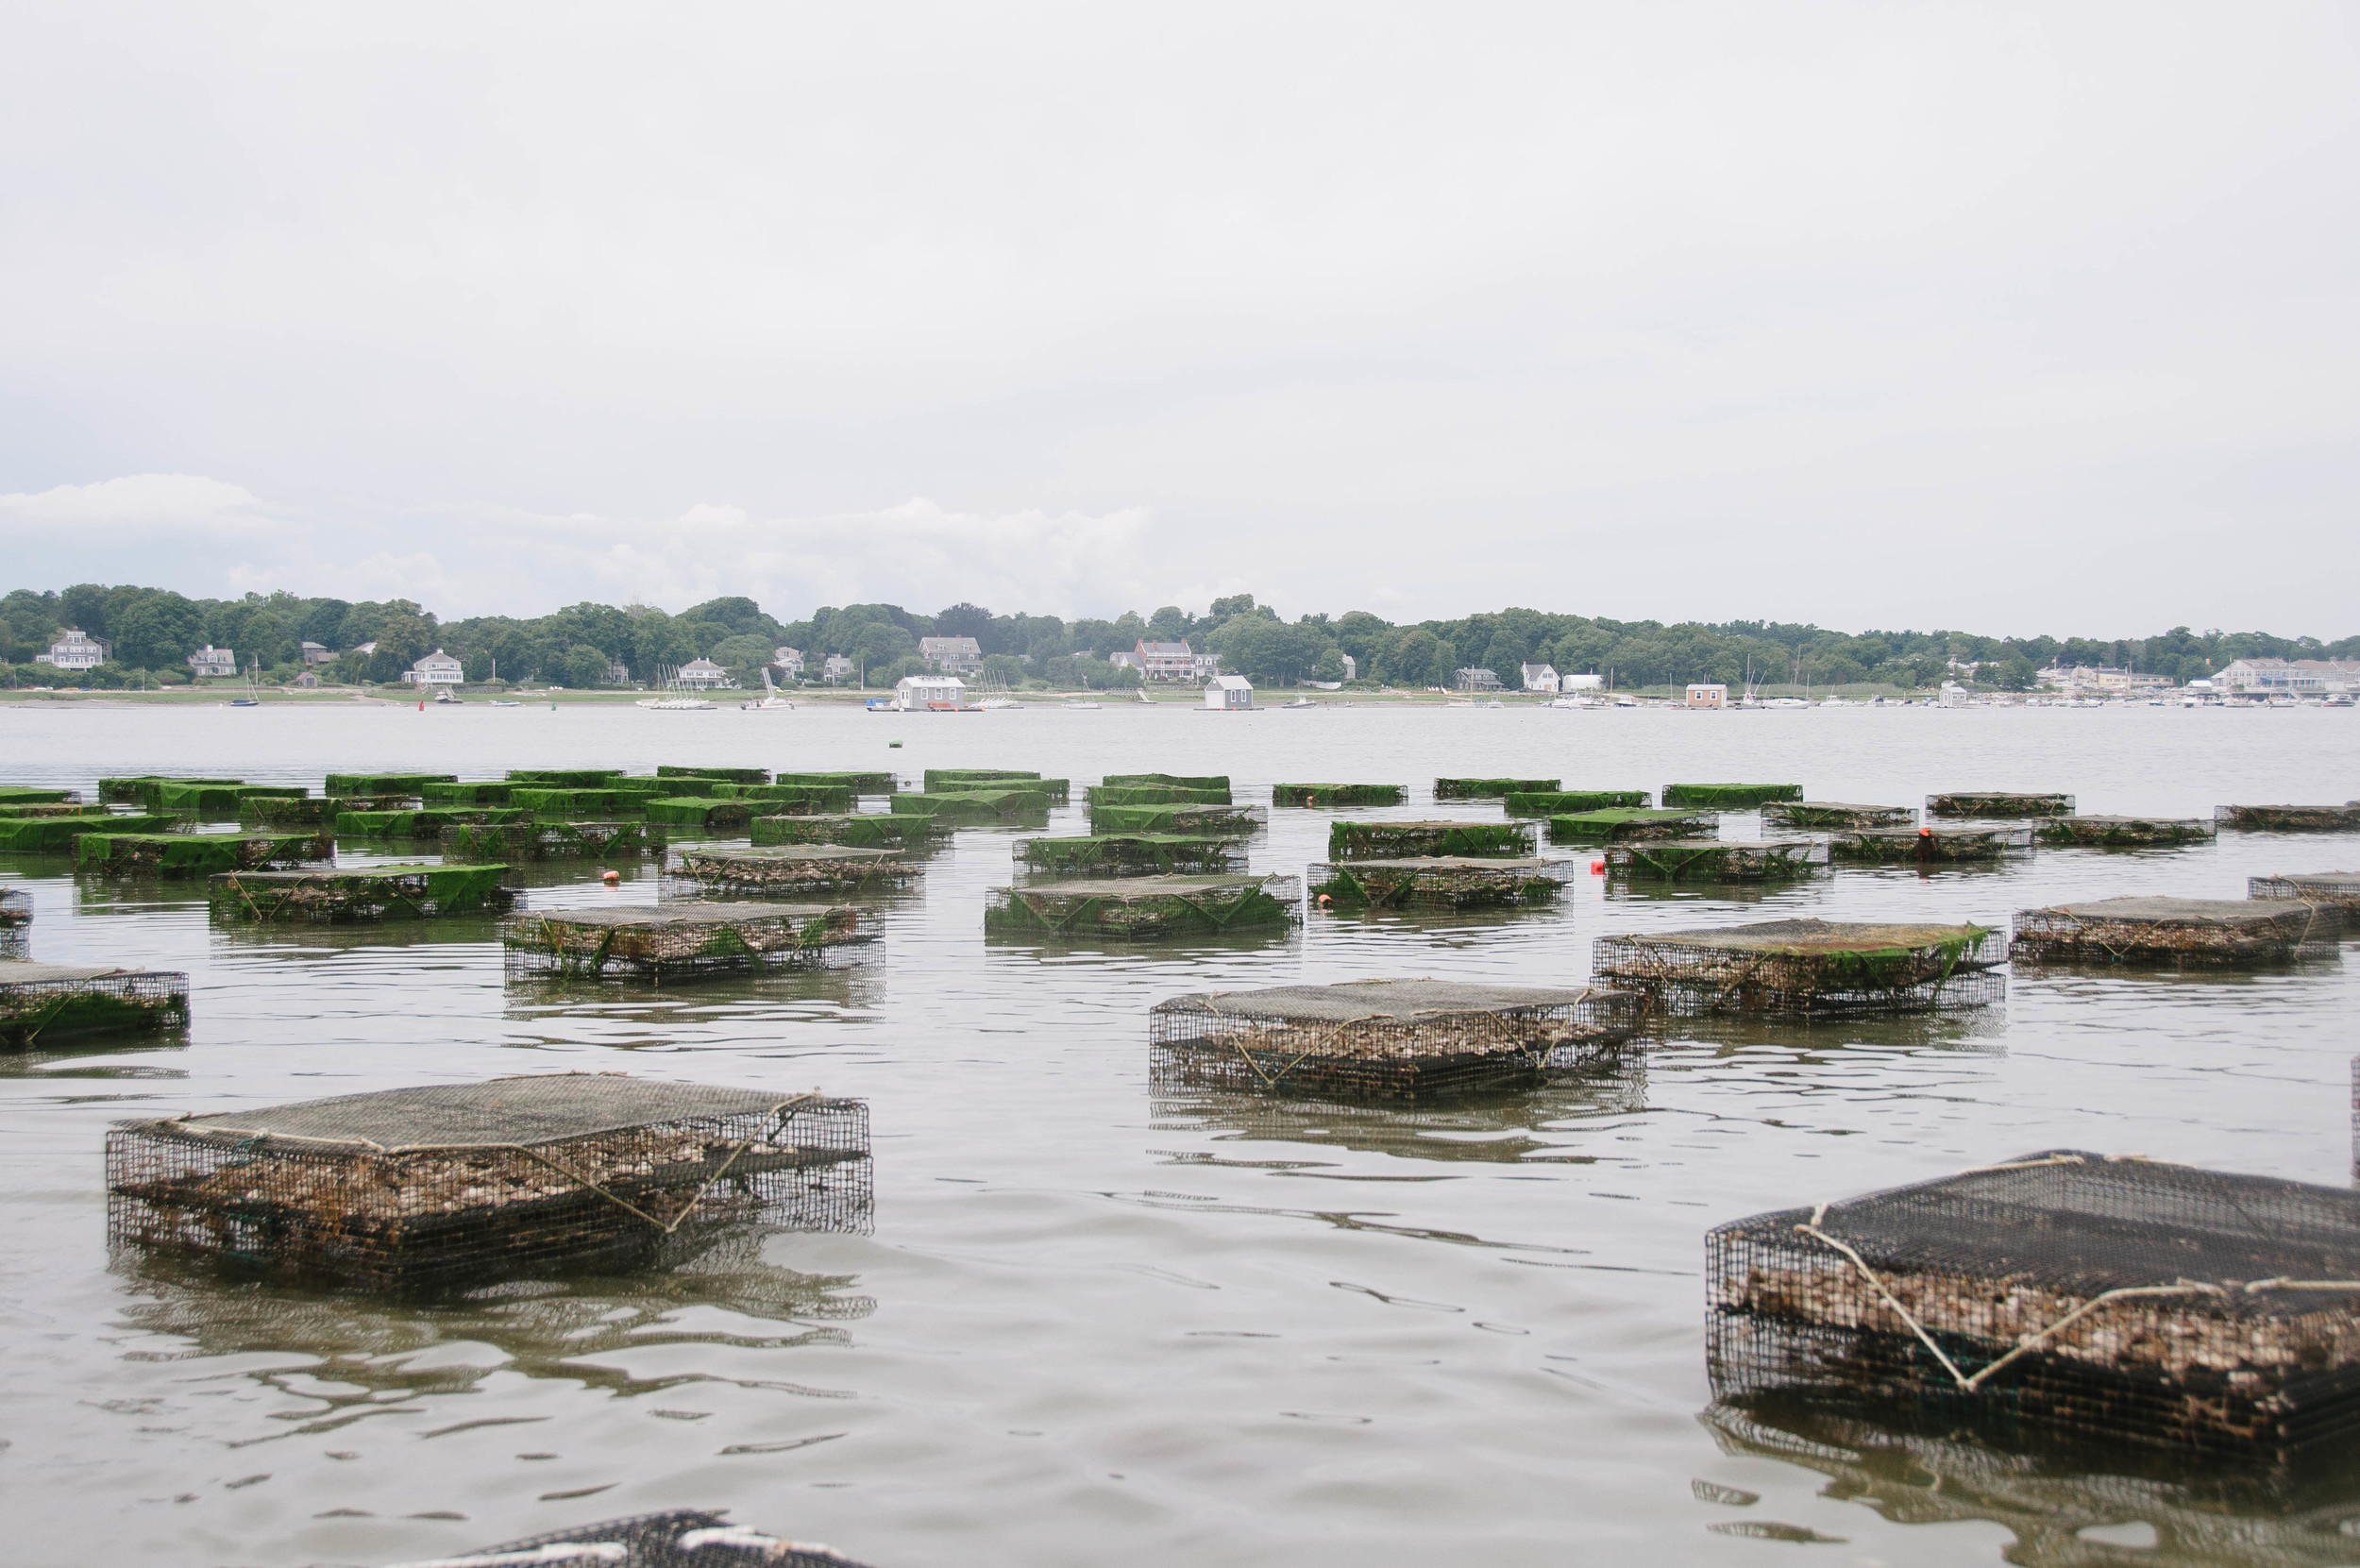 Island Creek Oyster Farm